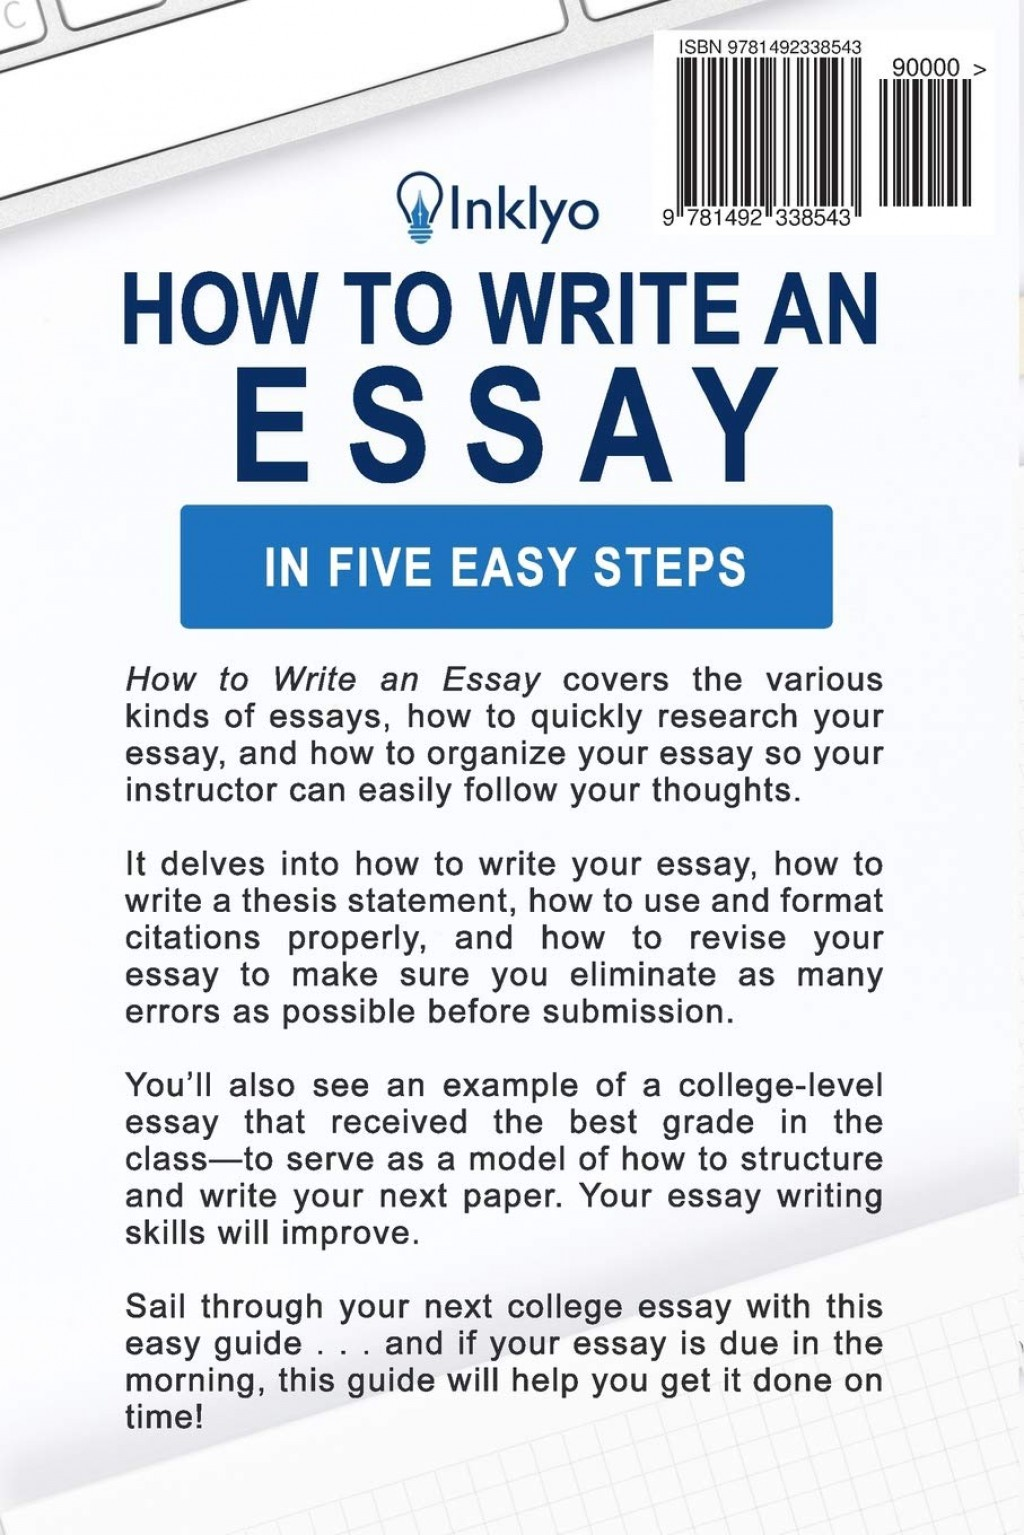 007 How To Make An Essay 71v7ckw5pll Unusual Self Introduction The Best In Longer With Periods Large